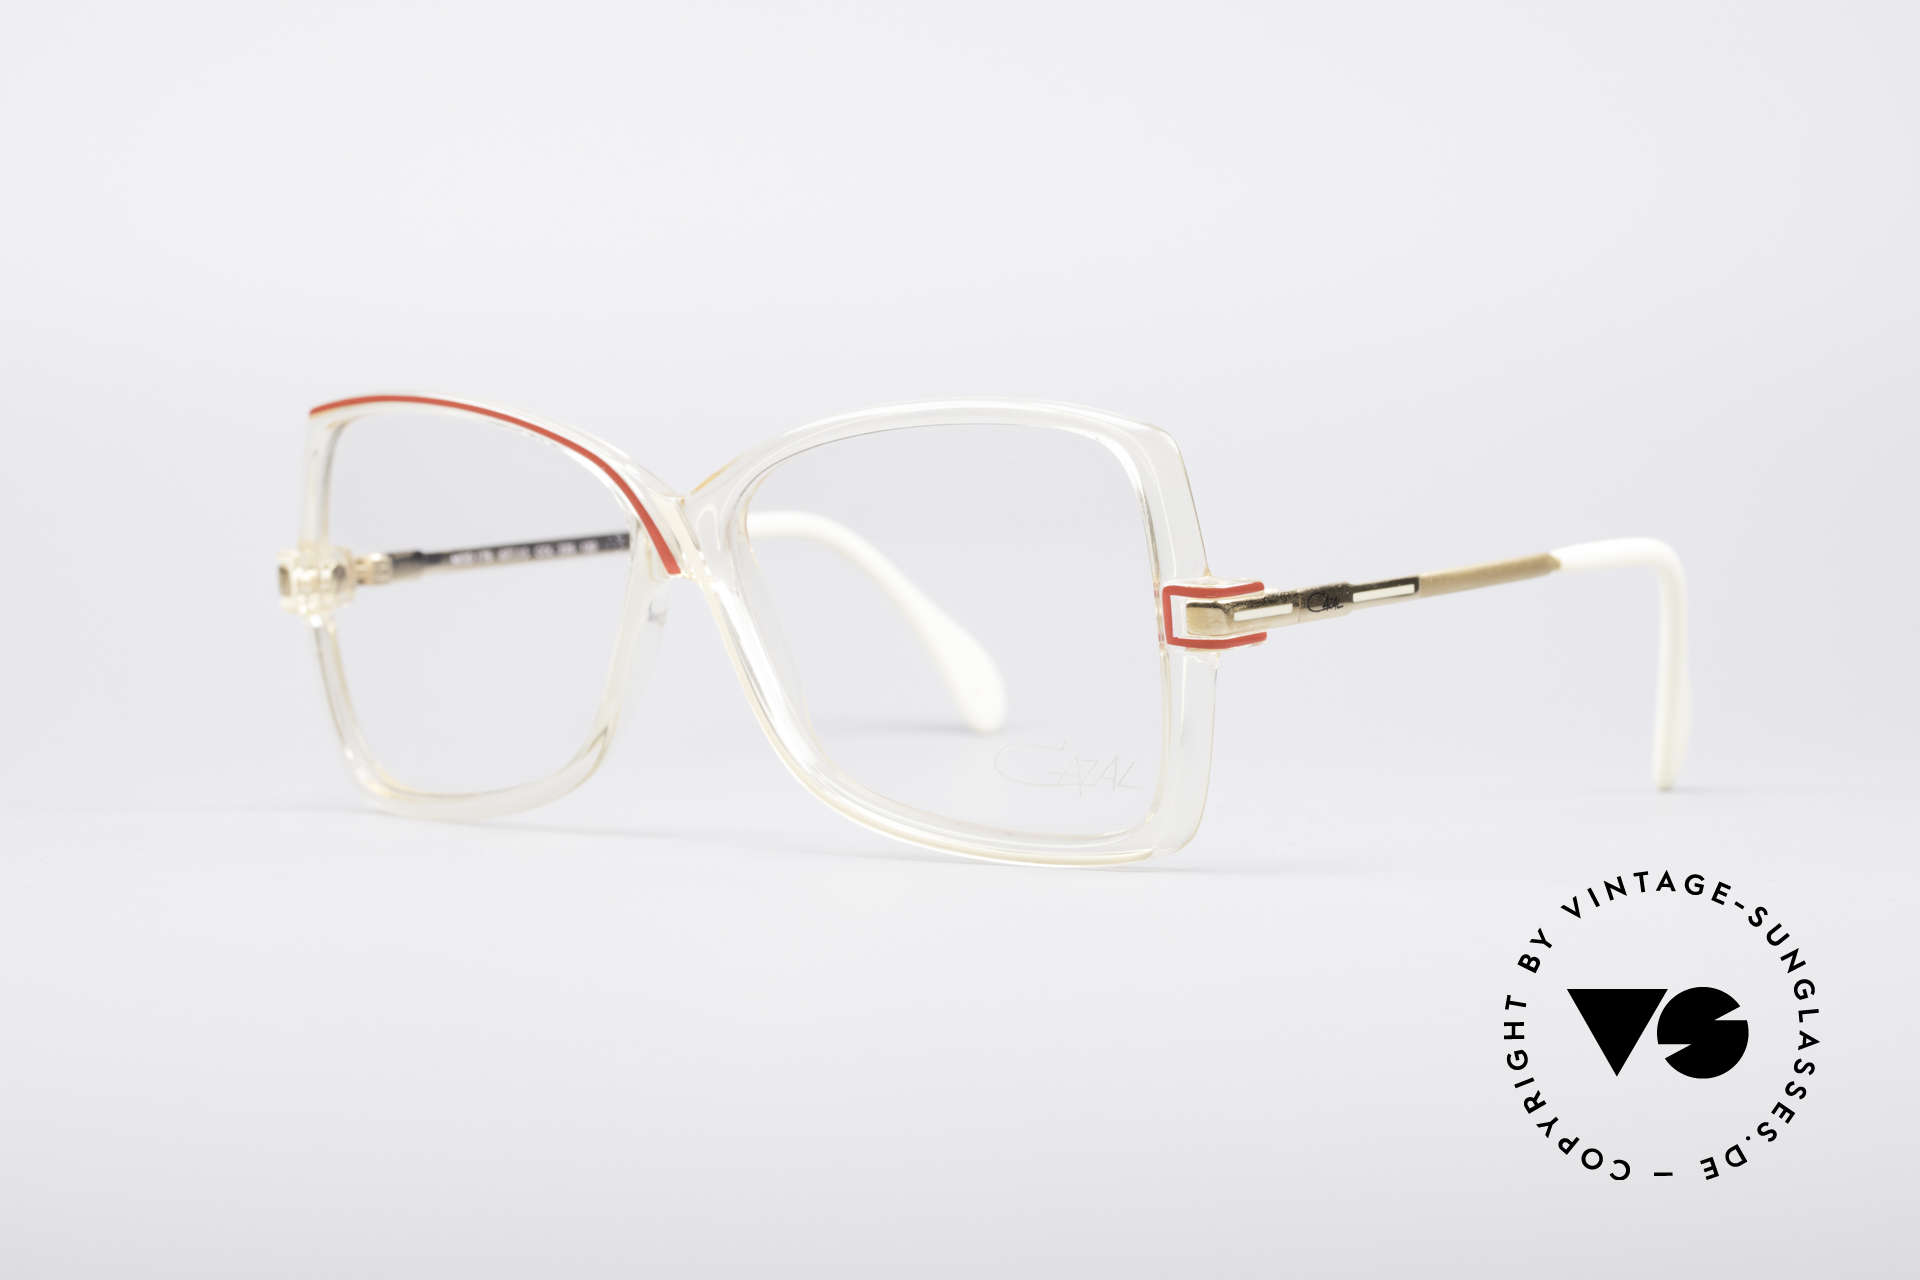 Cazal 175 True Vintage 80's Frame, terrific designer piece by CAri ZALloni (CAZAL), Made for Women